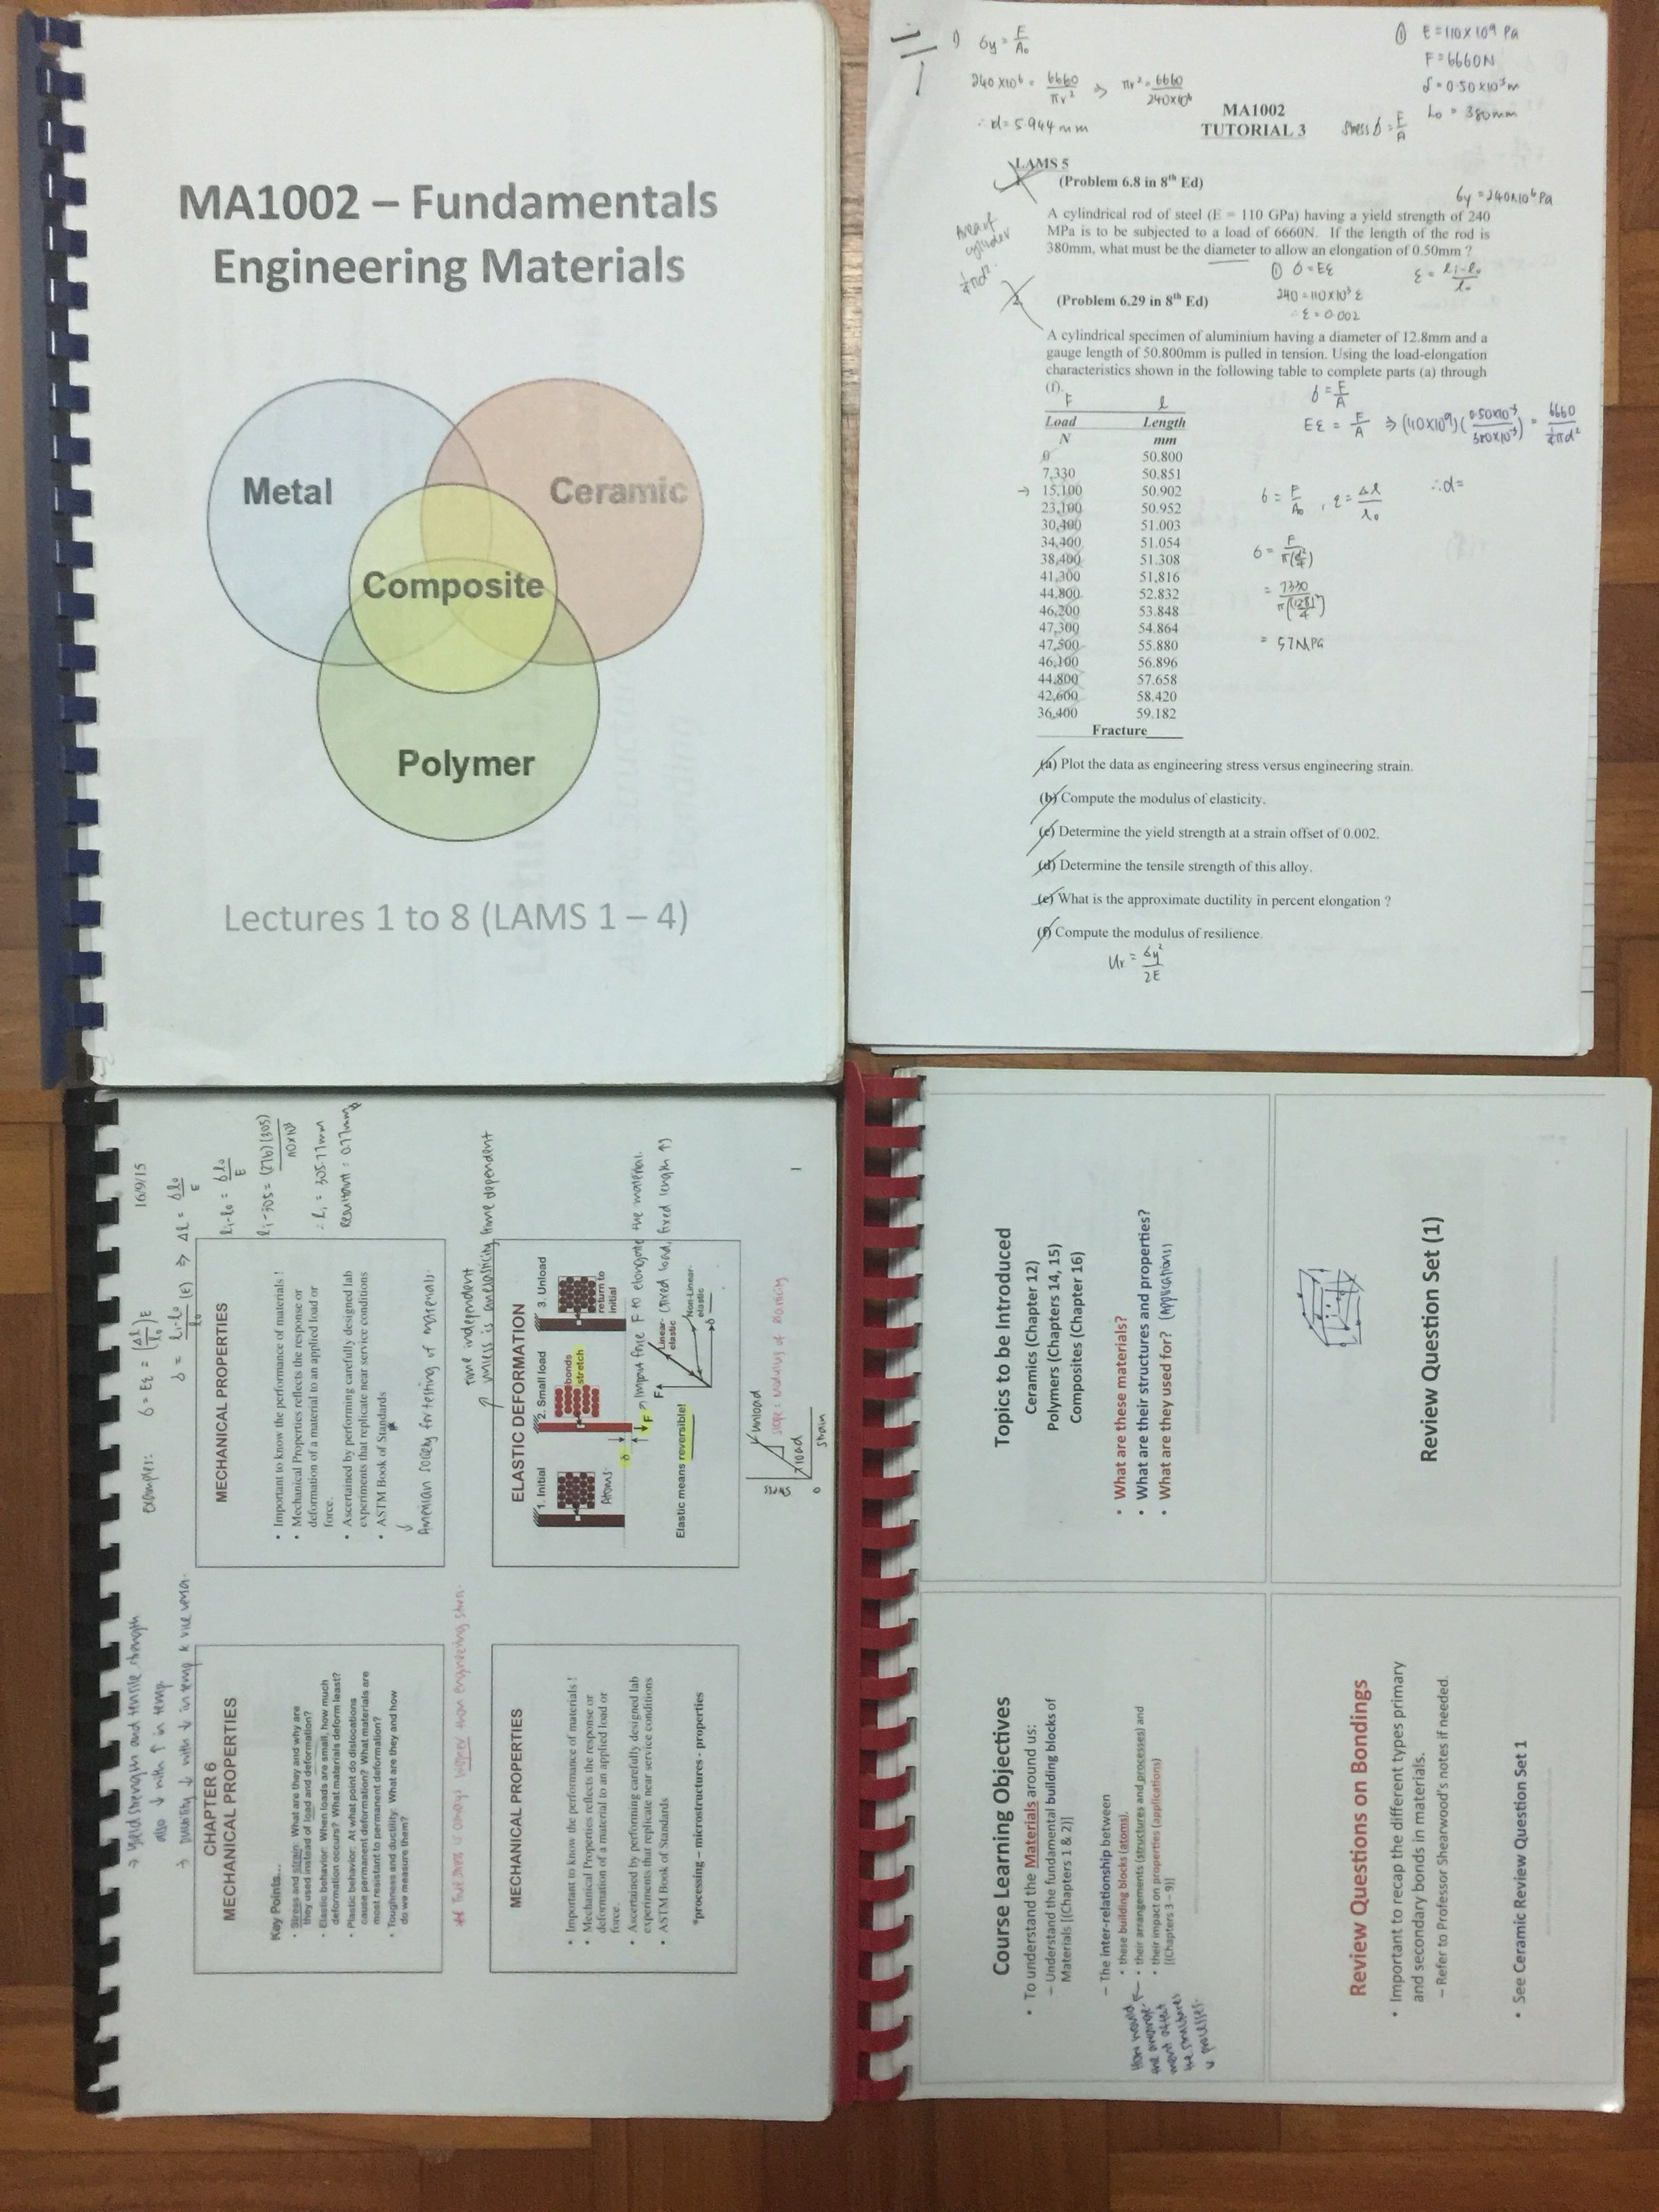 MA1002 Fundamental Engineering Materials Lecture Notes